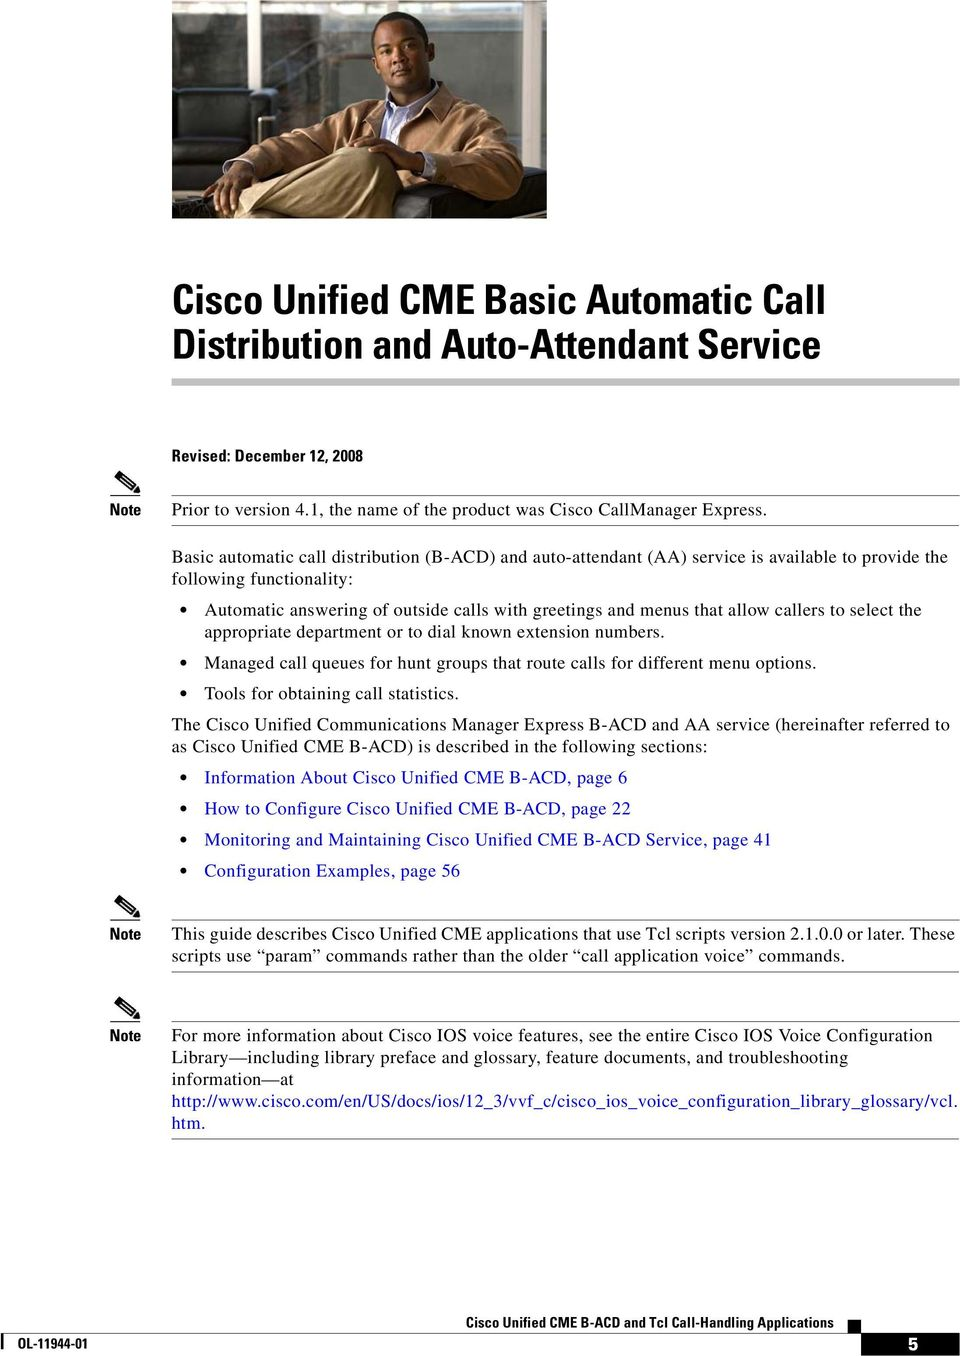 Cisco Unified CME B-ACD and Tcl Call-Handling Applications - PDF